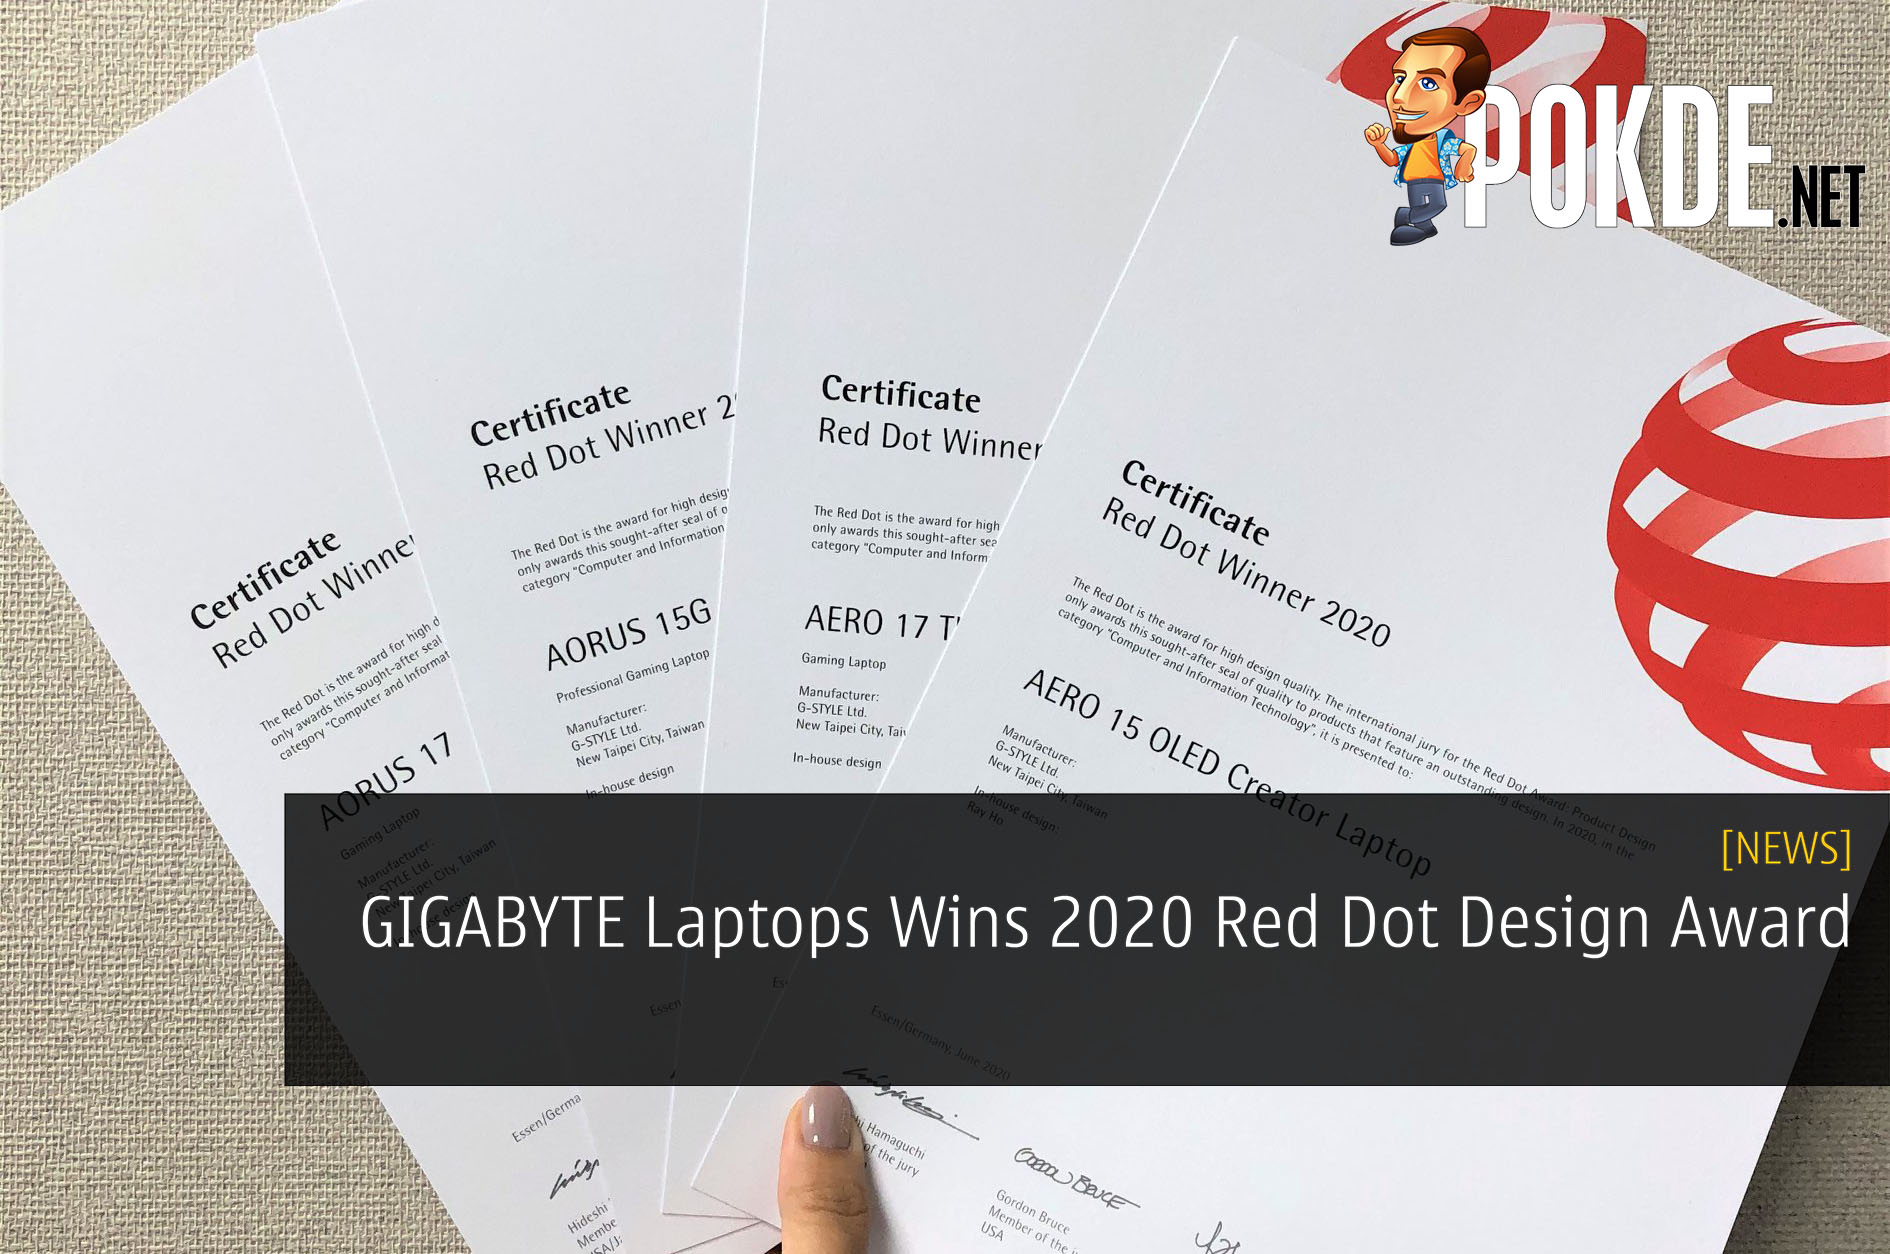 GIGABYTE Laptops Wins 2020 Red Dot Design Award 7